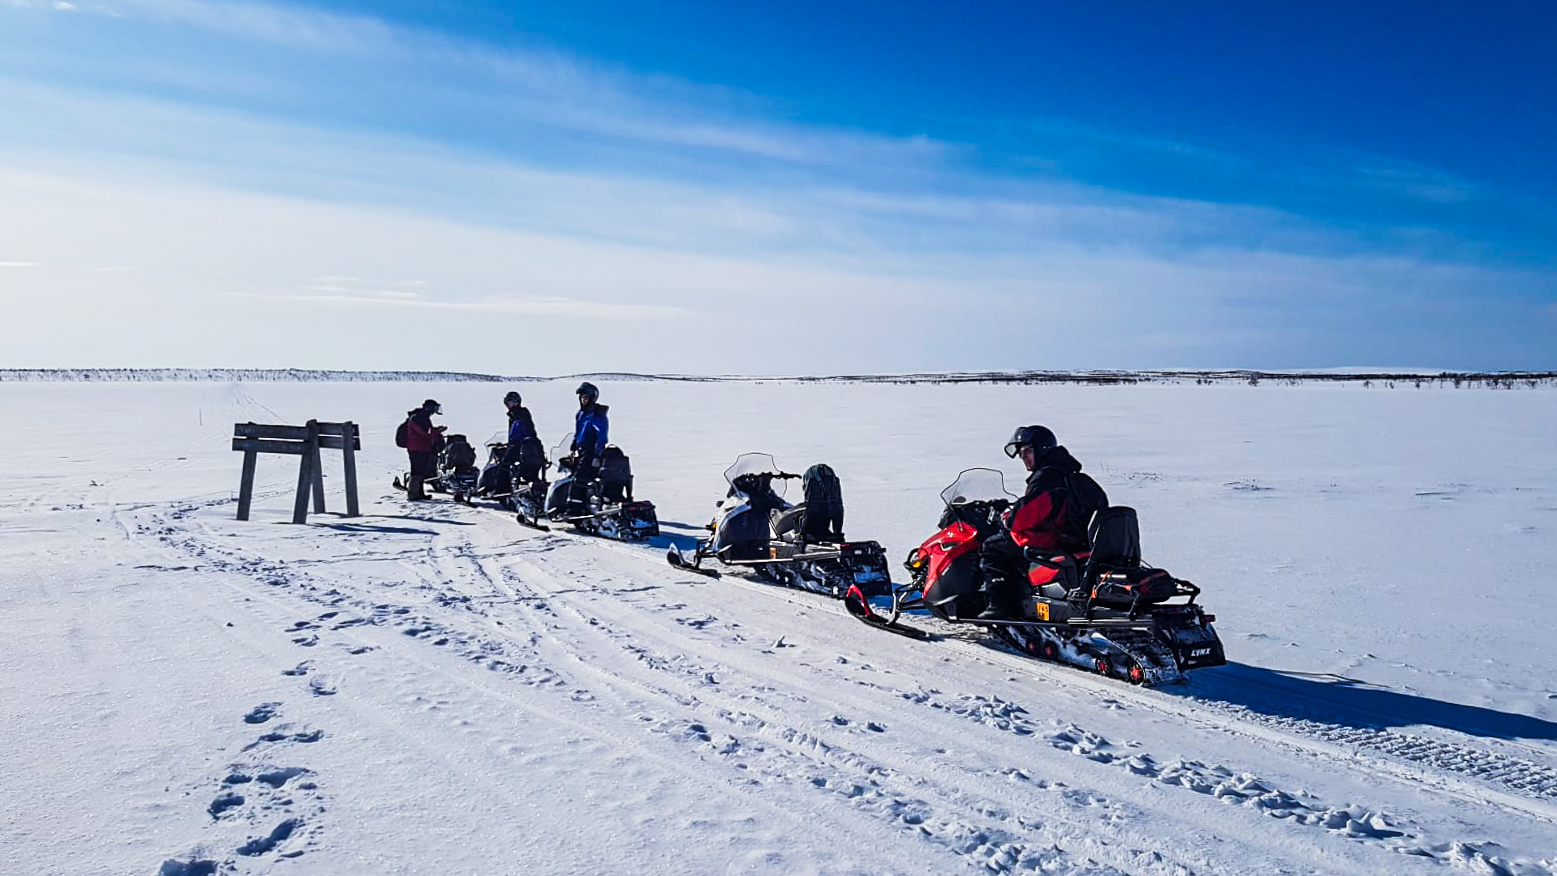 people on snowmobiles and snowy landscape